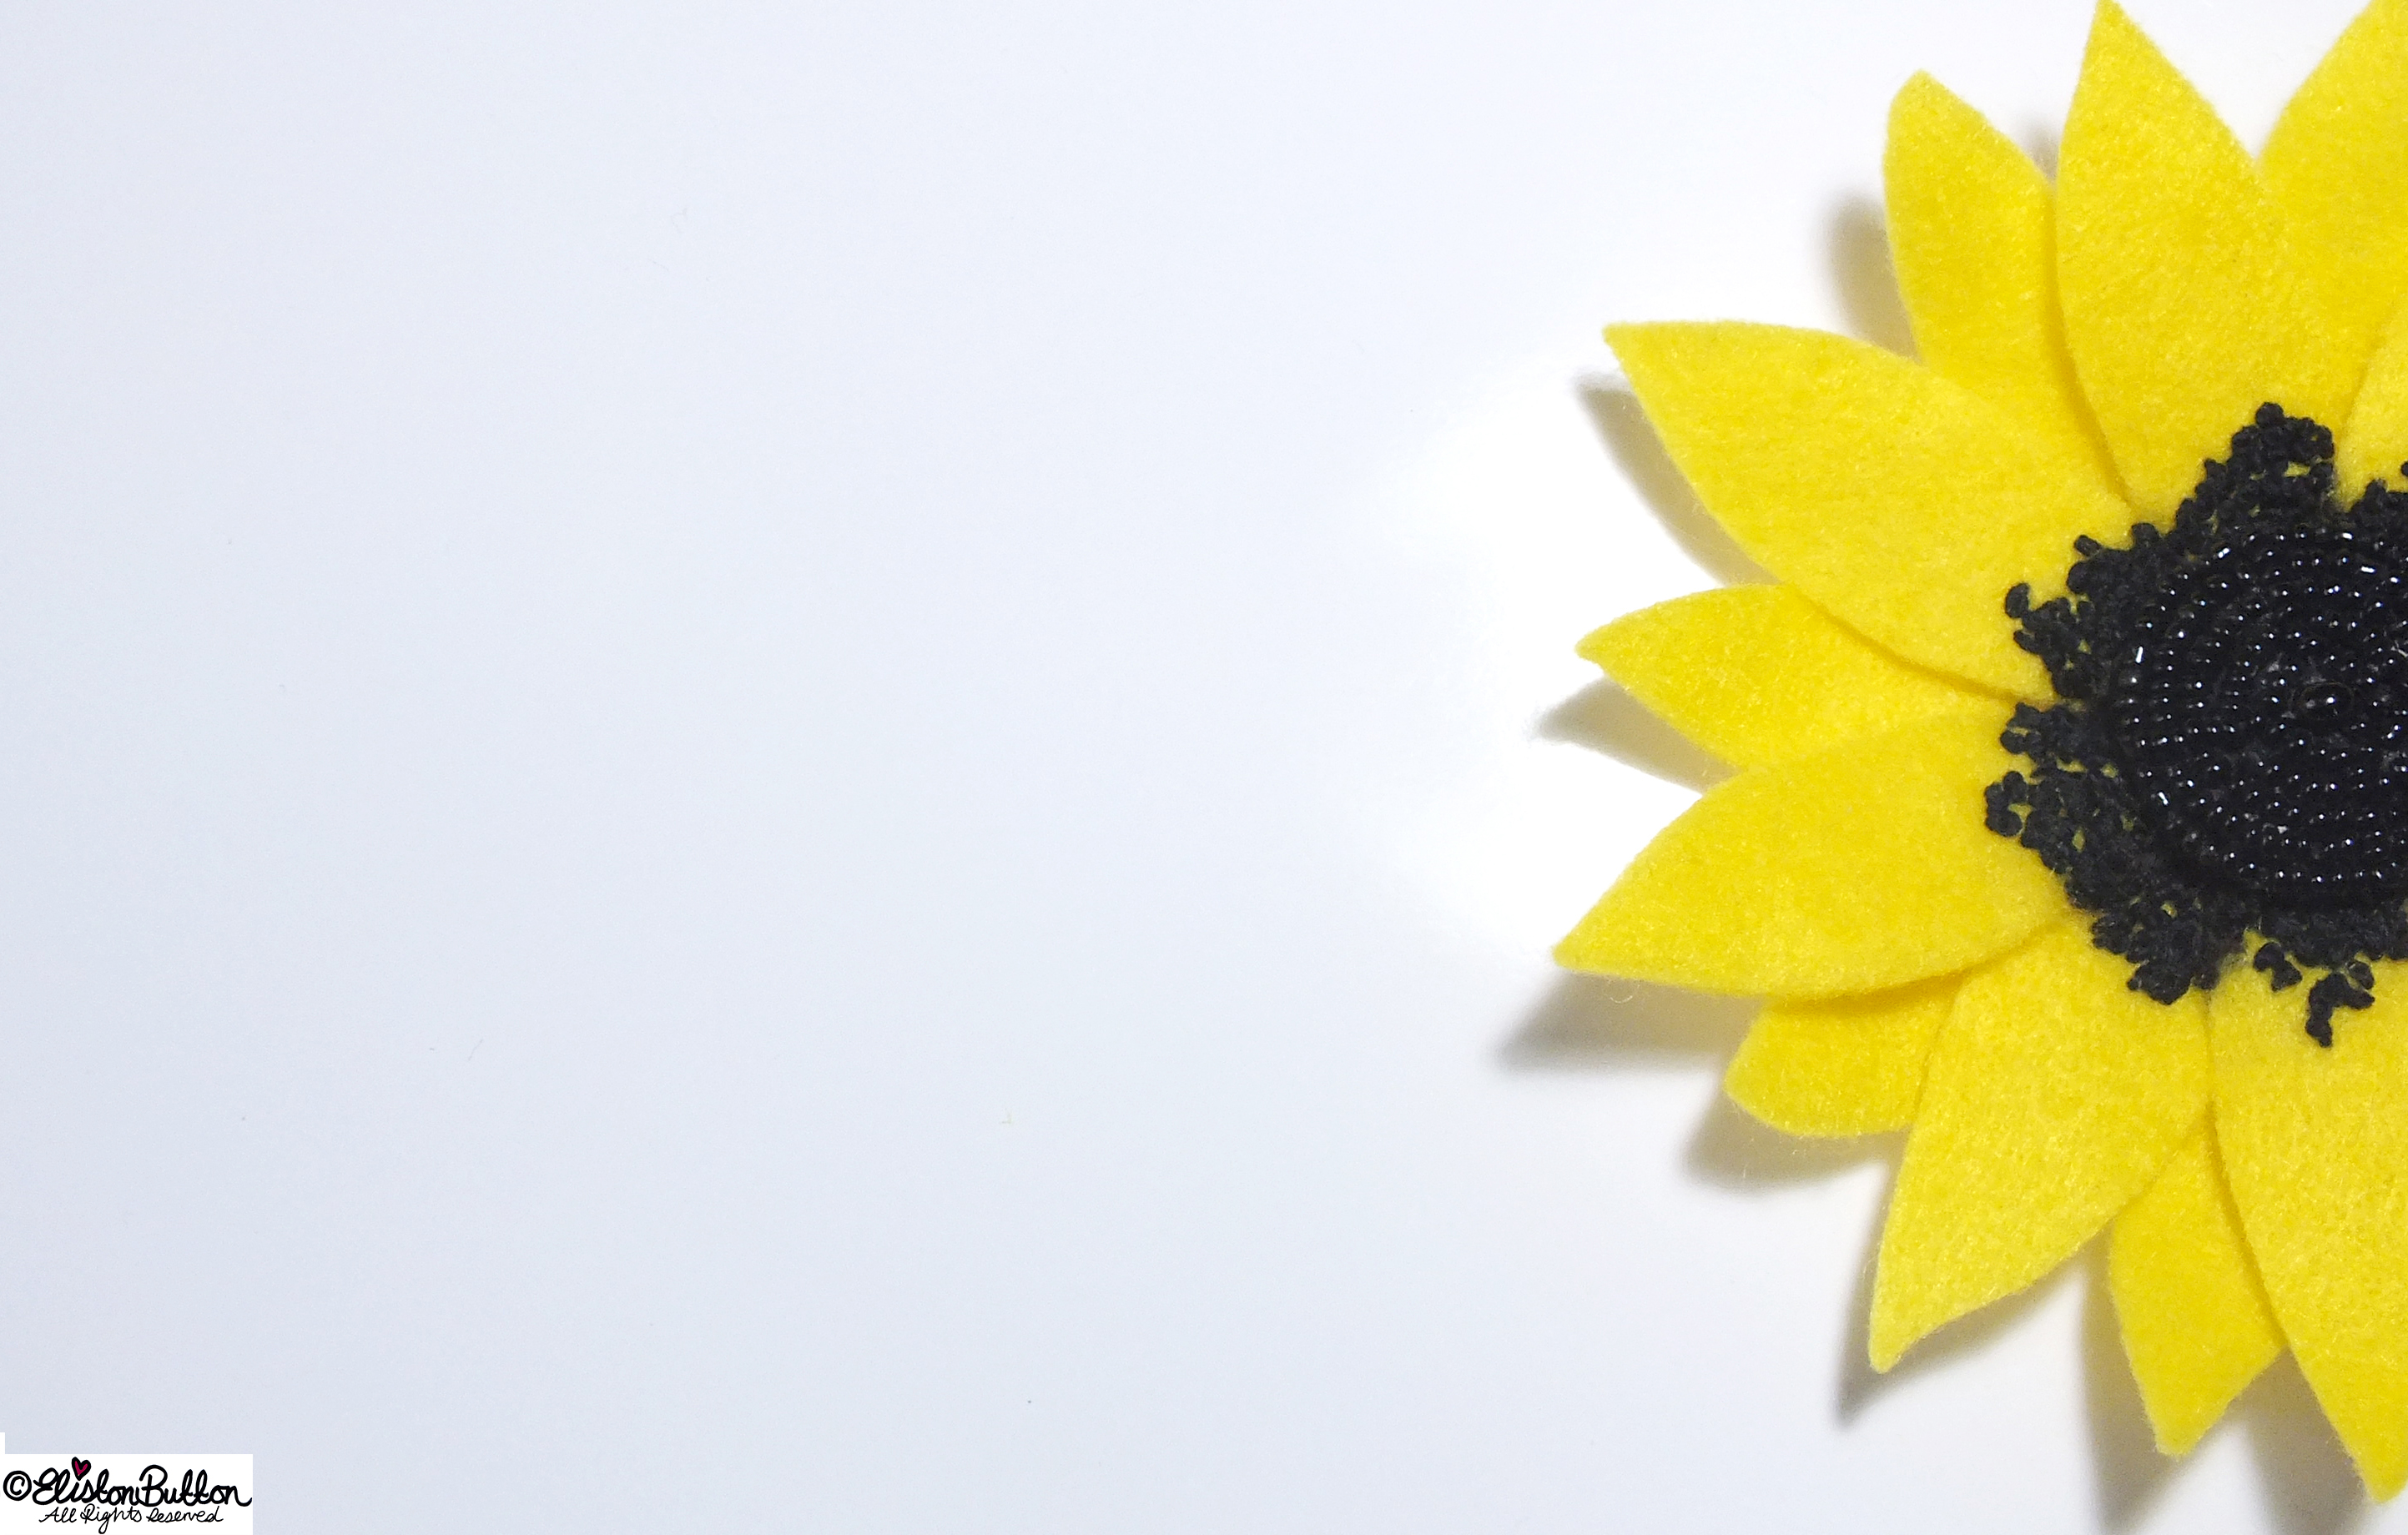 Sunny Days Happy Yellow Sunflower Embroidered Felt Flower Brooch - Petals - 27 Before 27 - Sunny Days at www.elistonbutton.com - Eliston Button - That Crafty Kid – Art, Design, Craft & Adventure.